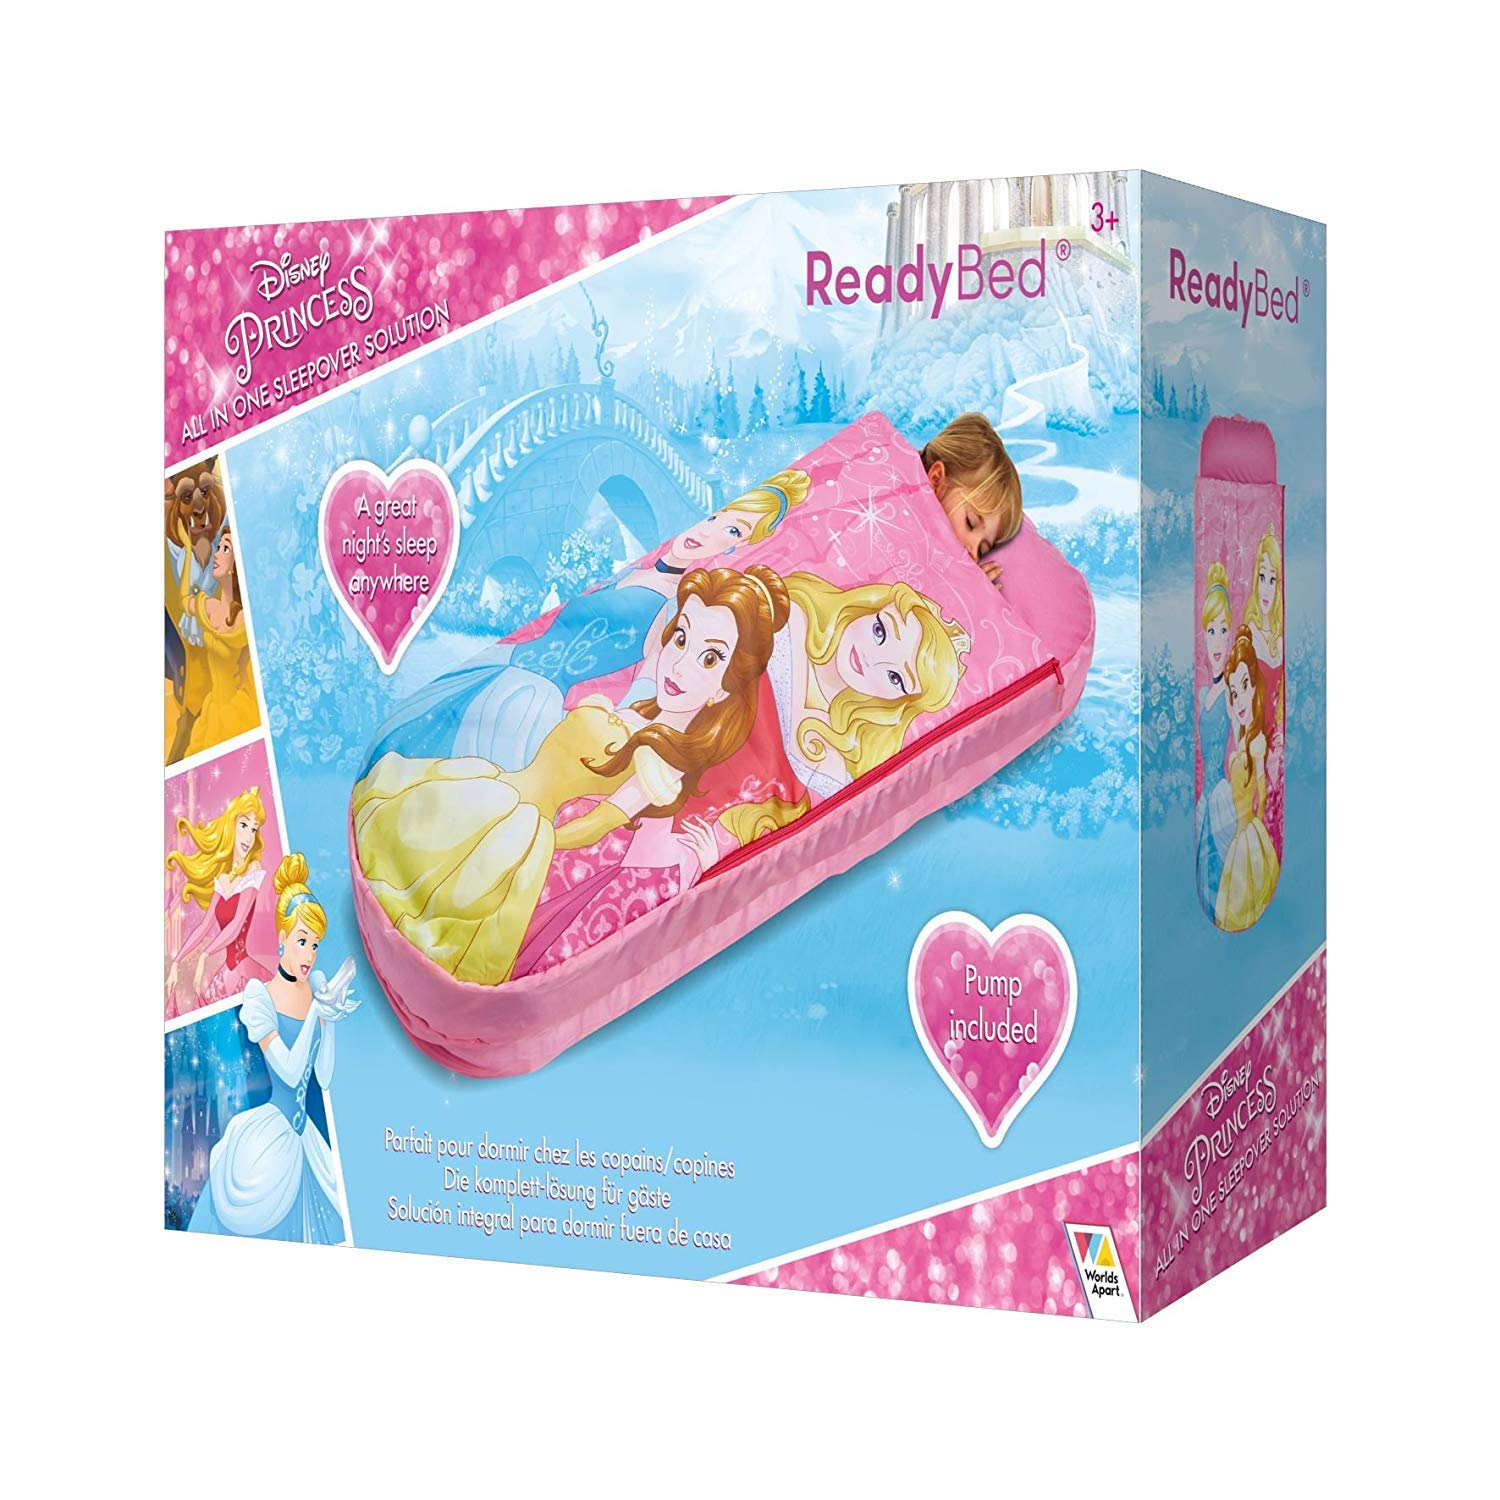 Disney Princess All in One Sleepover Bed - Airbed and Sleeping Bag in One Nap Mat Featuring Belle Cinderella and Aurora Ready Bed